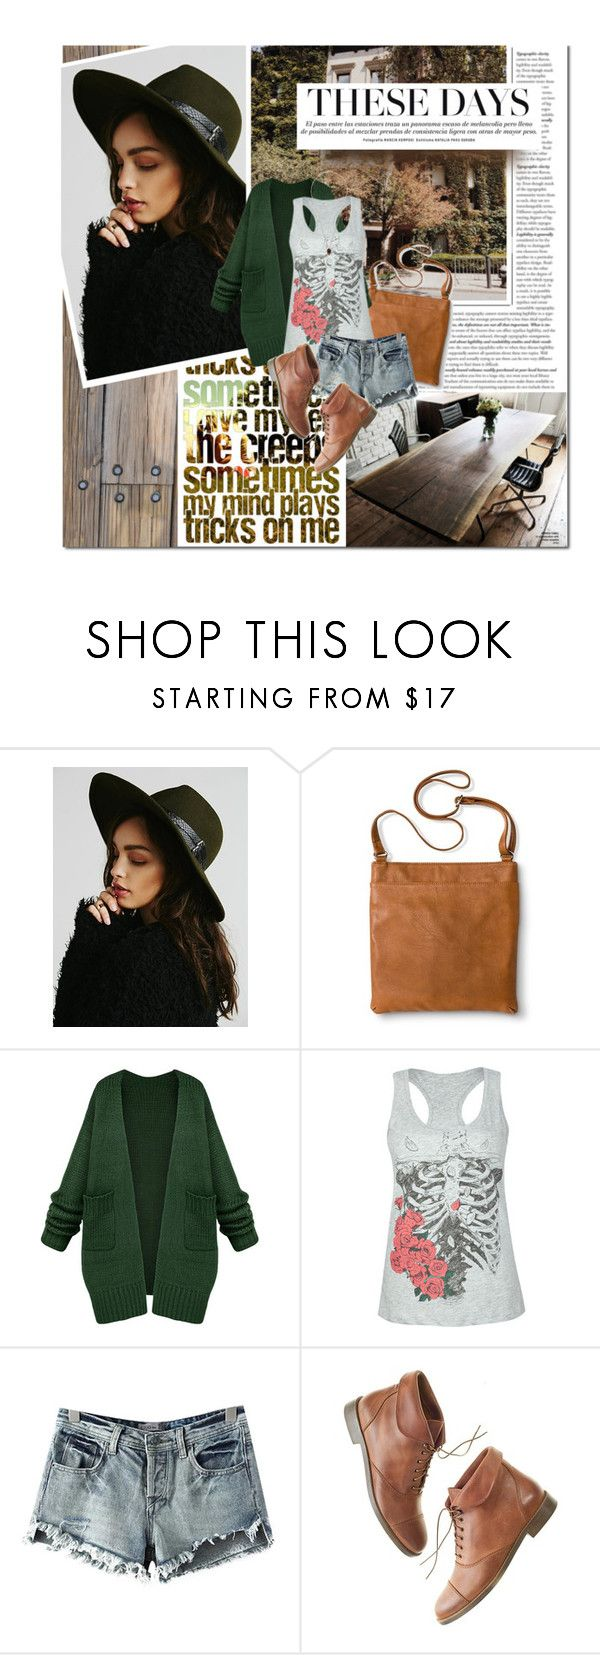 """these days"" by lifestyle-ala-grace ❤ liked on Polyvore featuring Free People, Merona, Full Tilt, Chicnova Fashion, Madewell, BY SOPHIE, tanktop, edgy, cardigan and ankleboots"